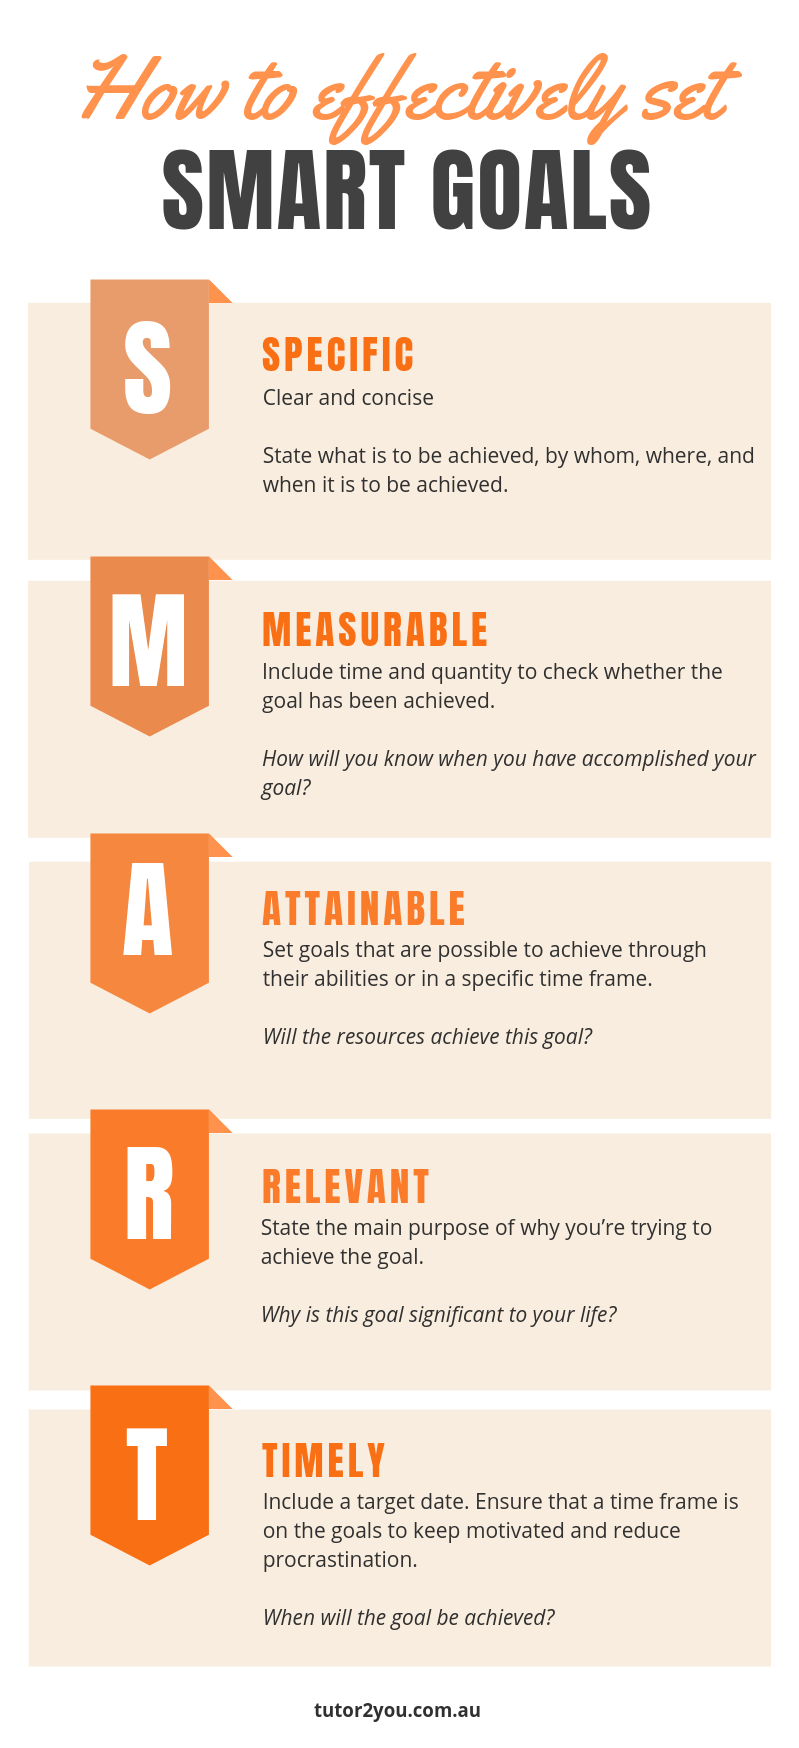 HOW TO EFFECTIVELY SET SMART GOALS - INFOGRAPHIC | TUTOR2YOU